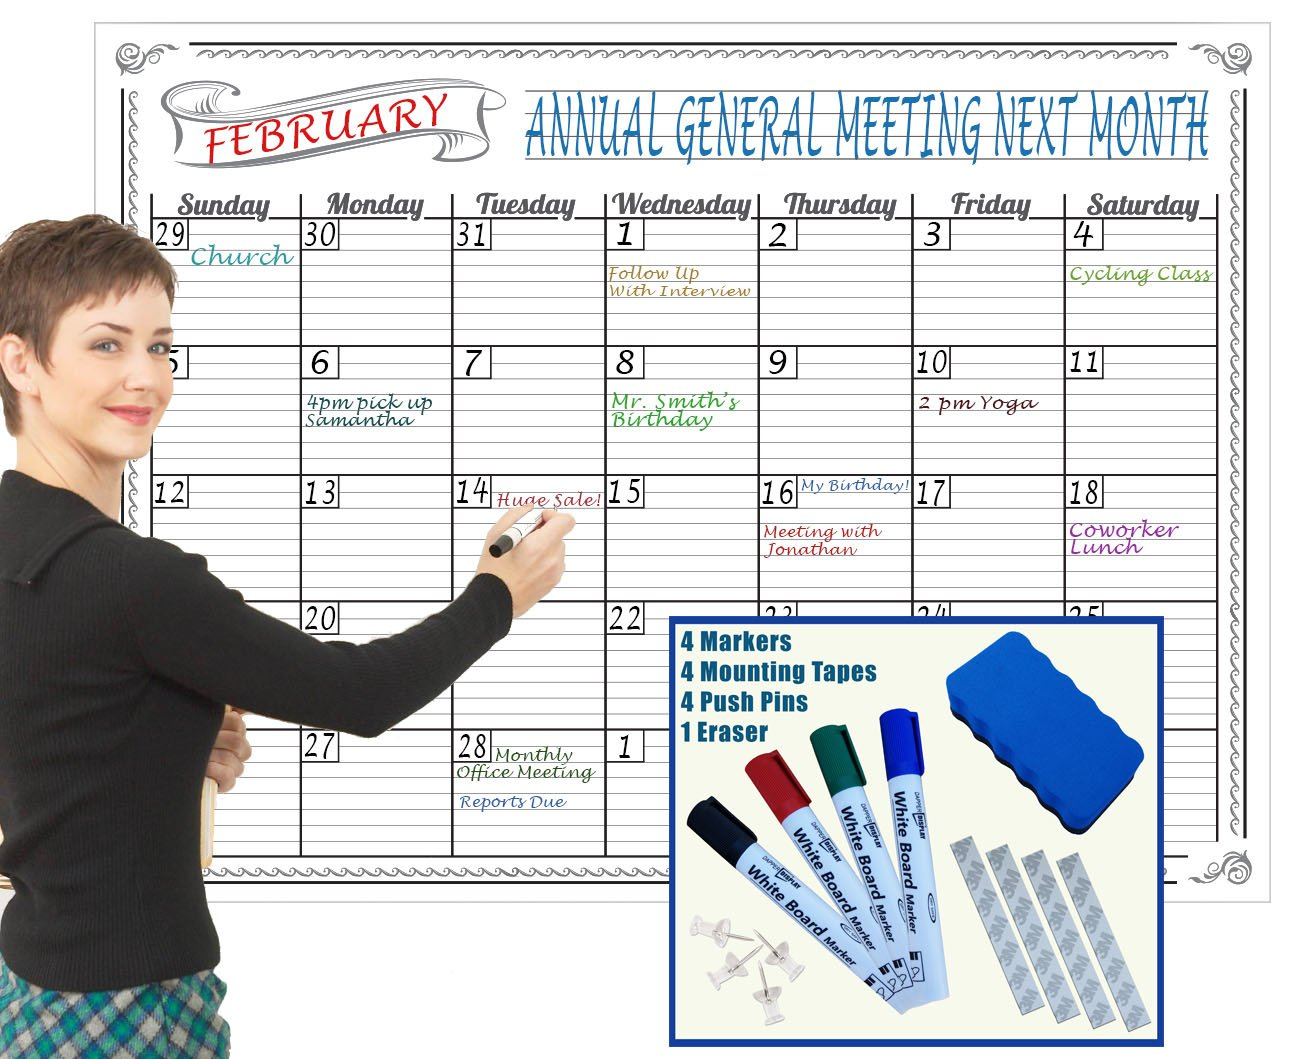 Large Dry Erase Calendar Wall Hanging Classroom Decorations 2018 2019 Teacher Supplies Fun Activity Tracker Kids Chore Chart Poster Organizer Weekly Planner Markers Eraser Office Organization 36x48 in